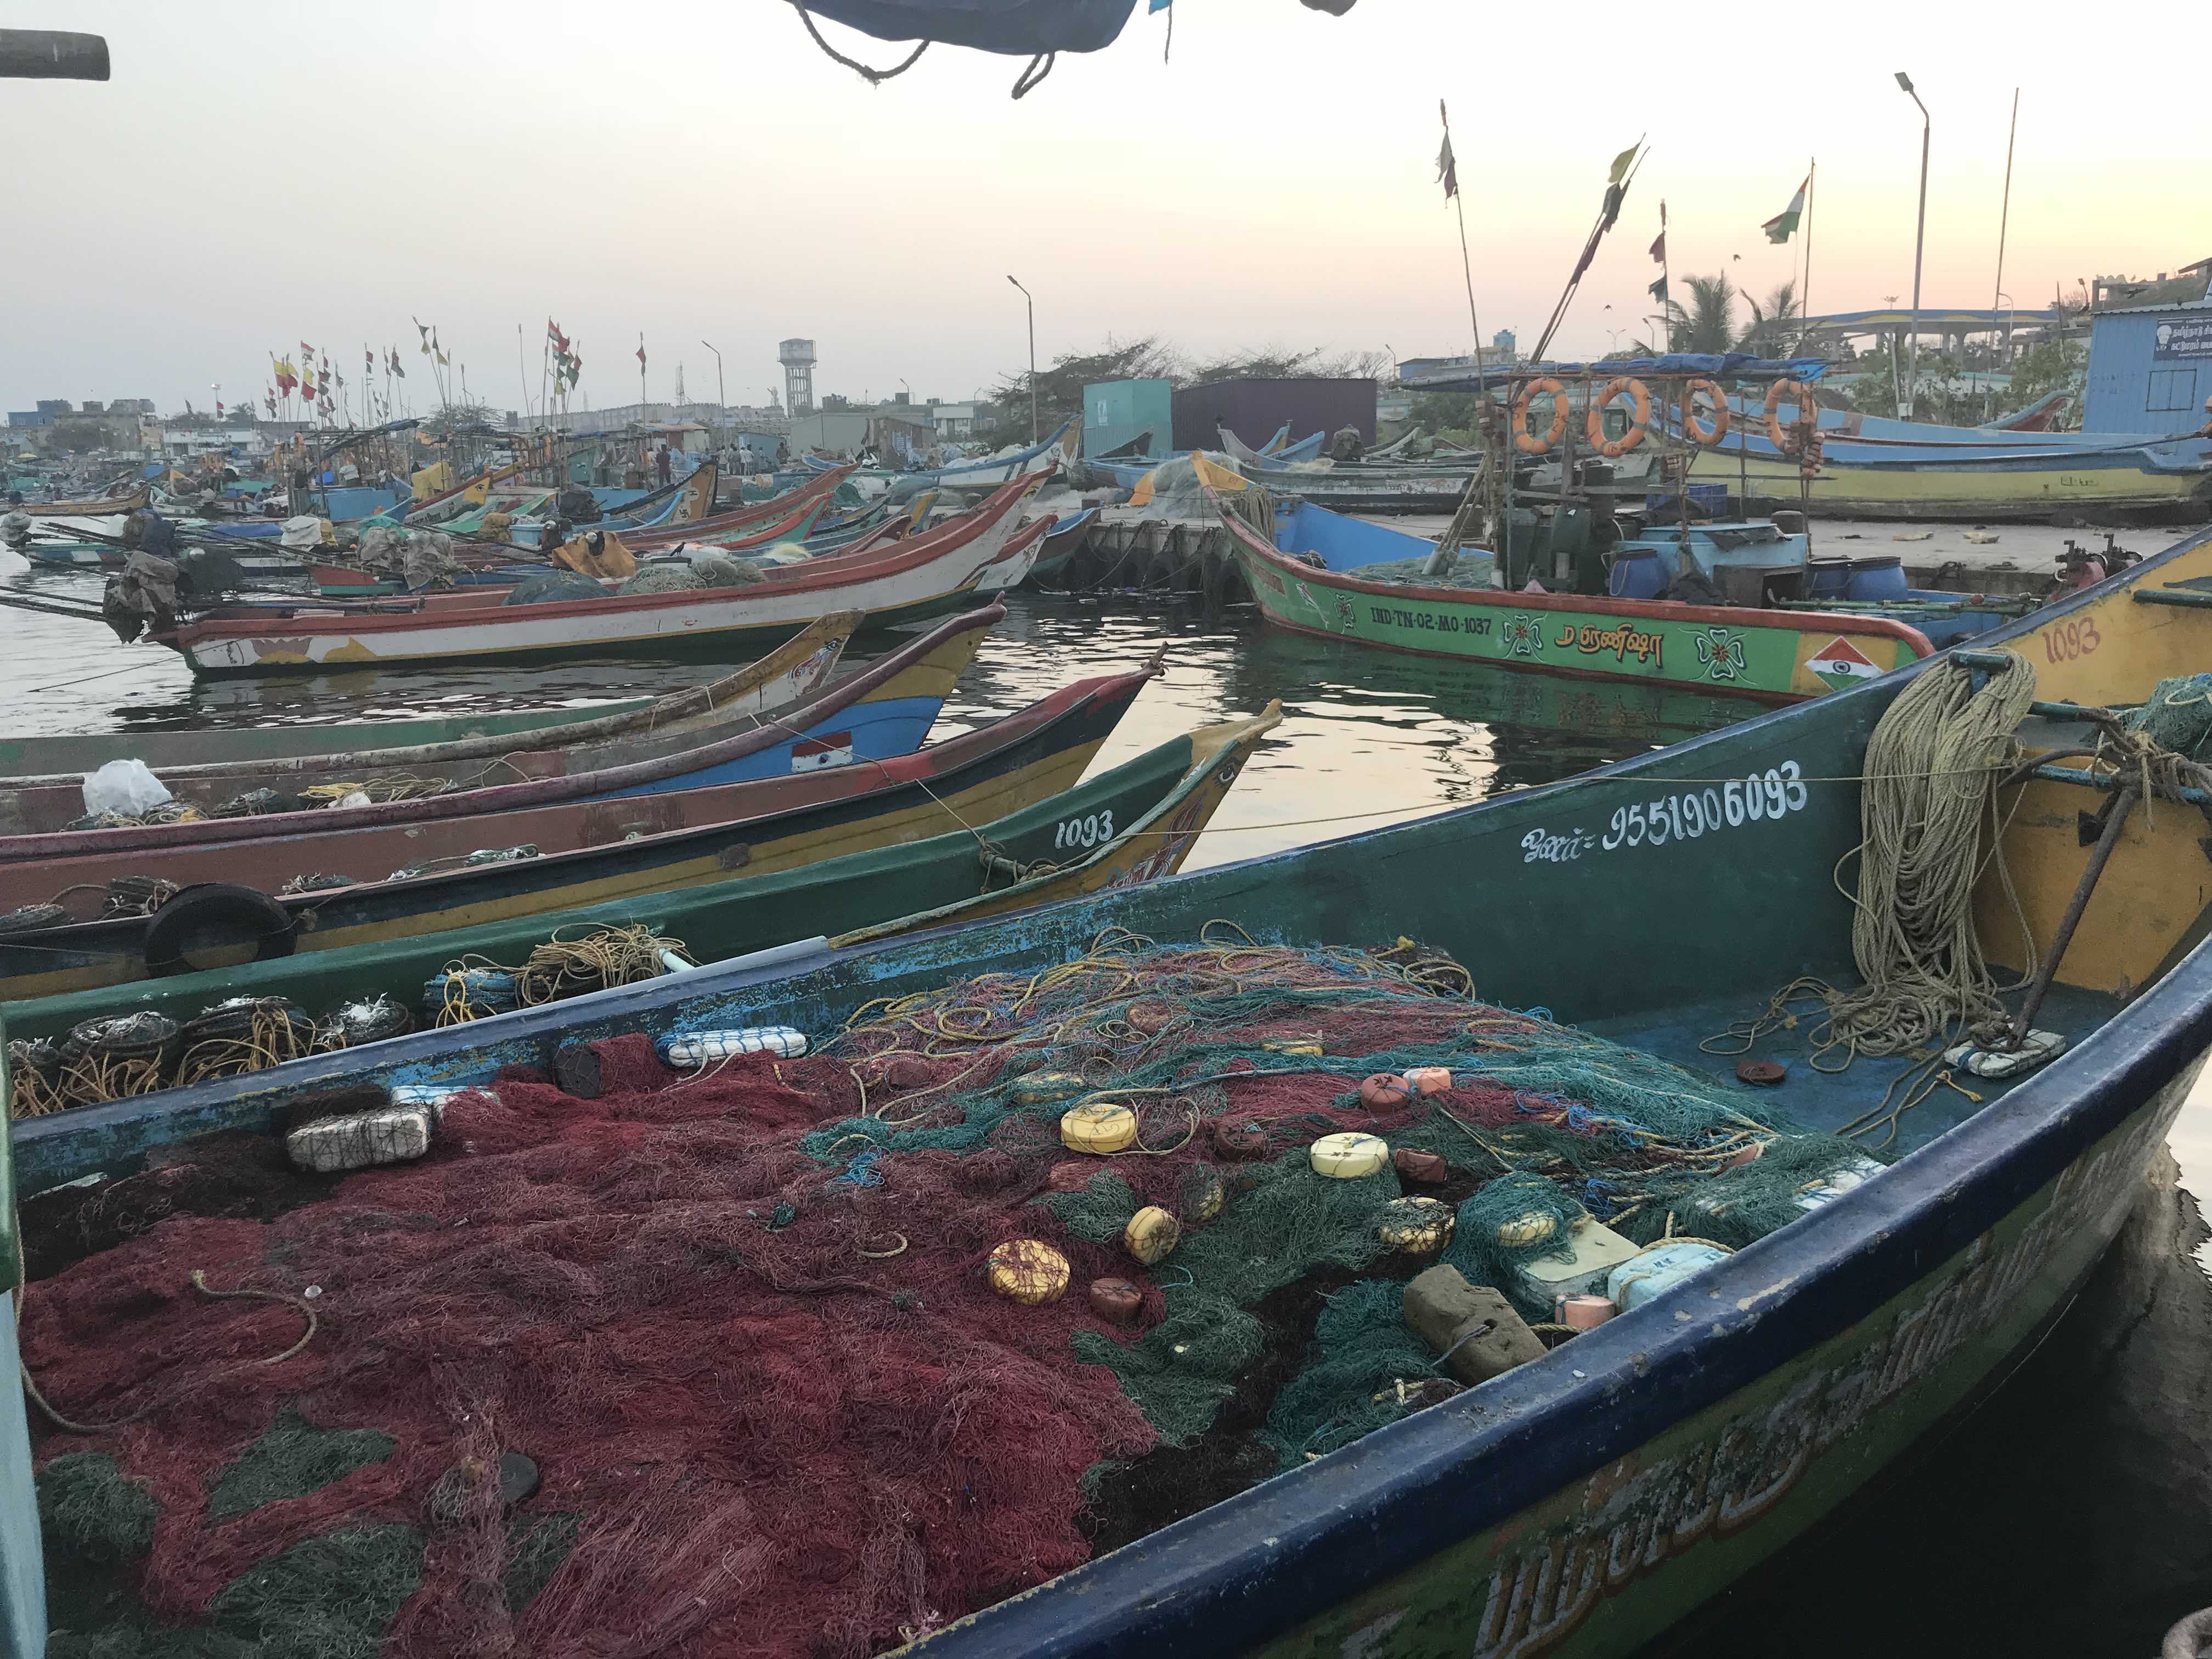 Small boats docked at Kasimedu. Credit: Supriya Vohra